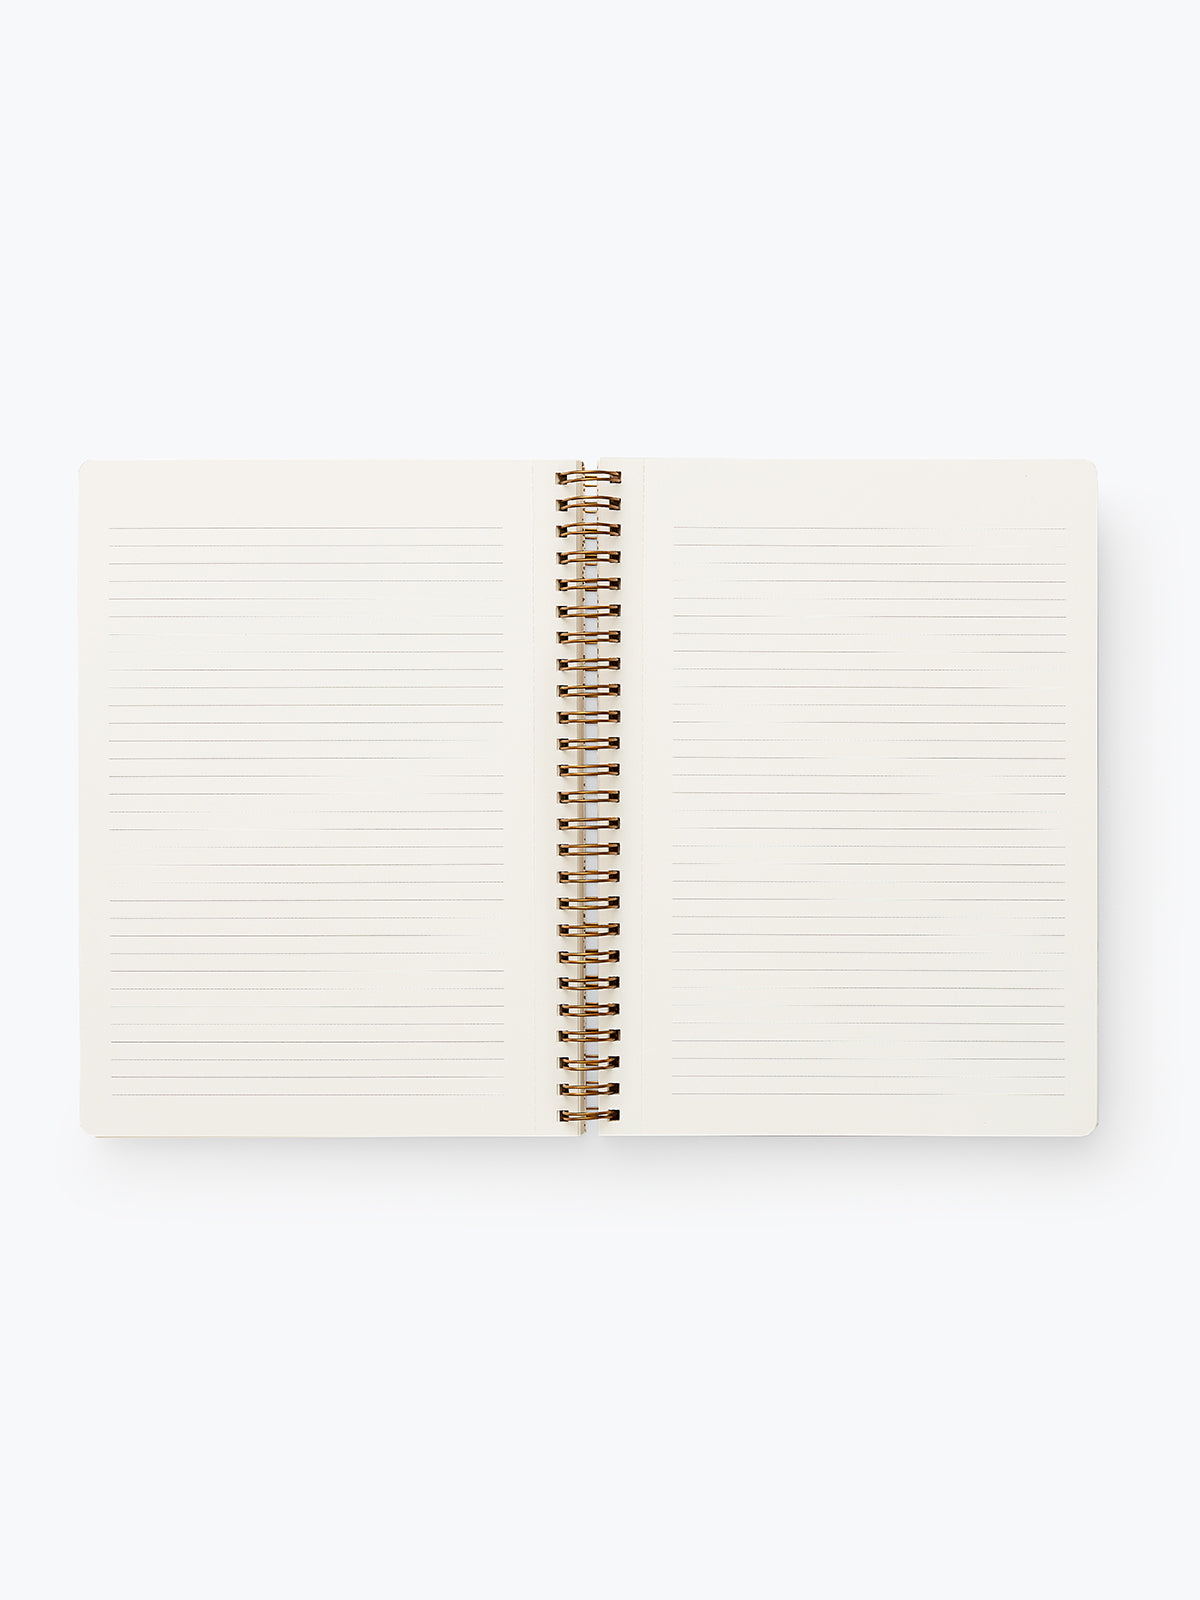 Lined notebooks inside